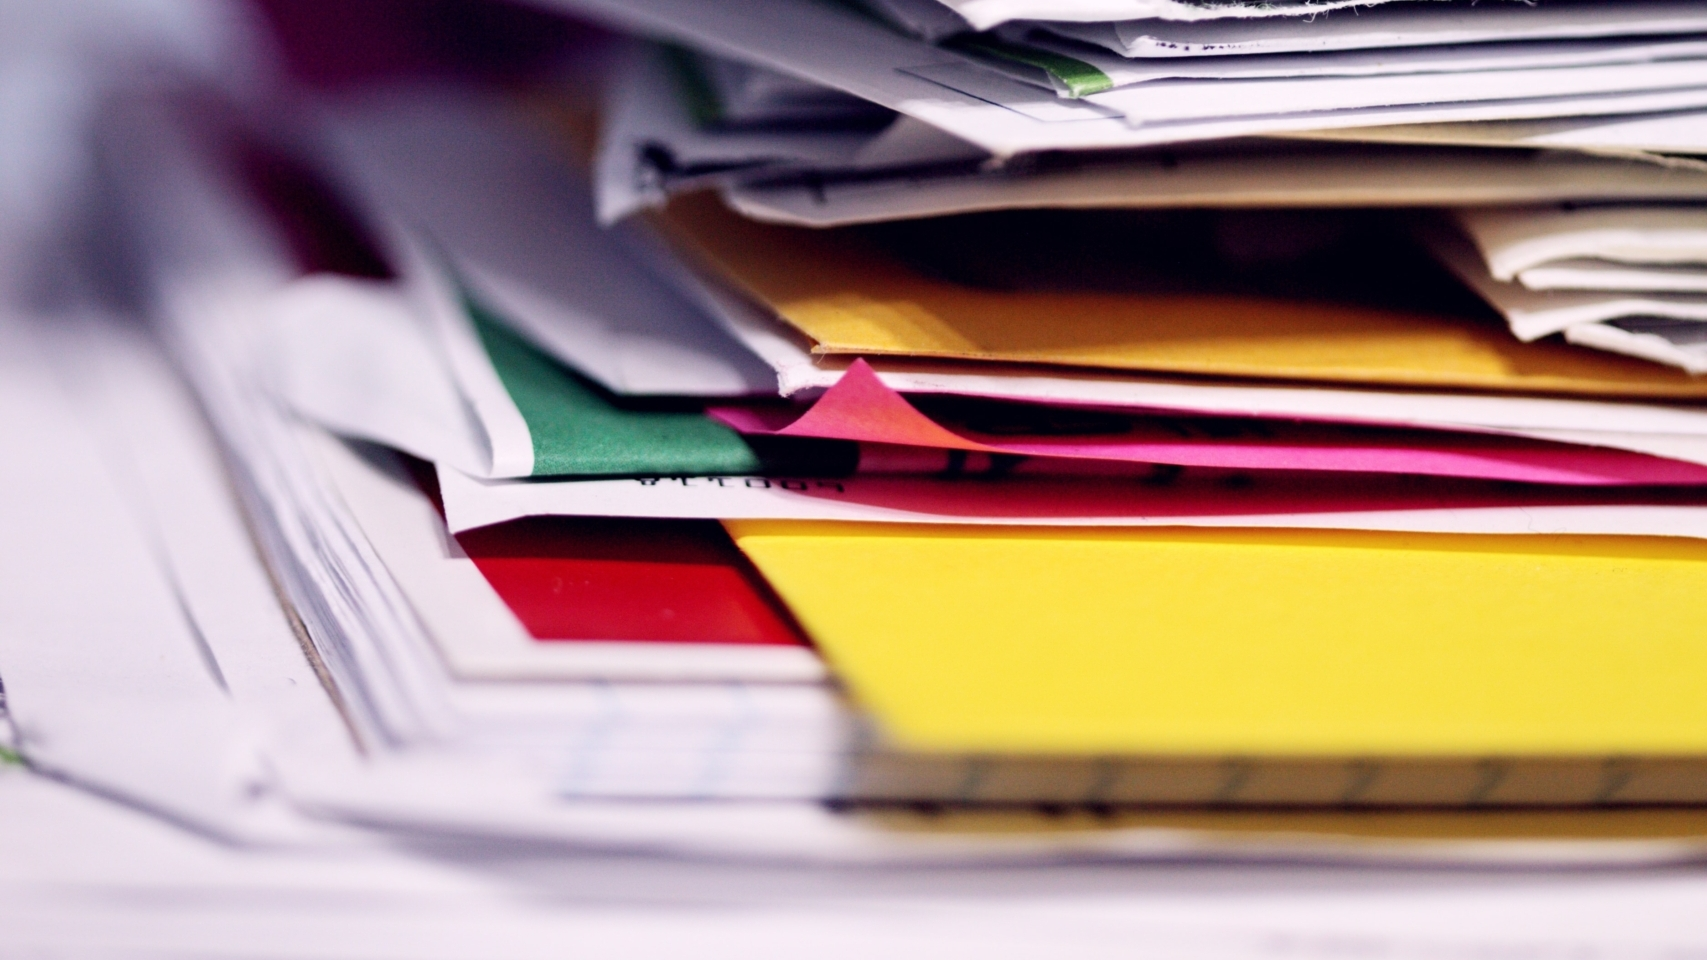 Received an IRS Letter? What It Means & What You Should Do